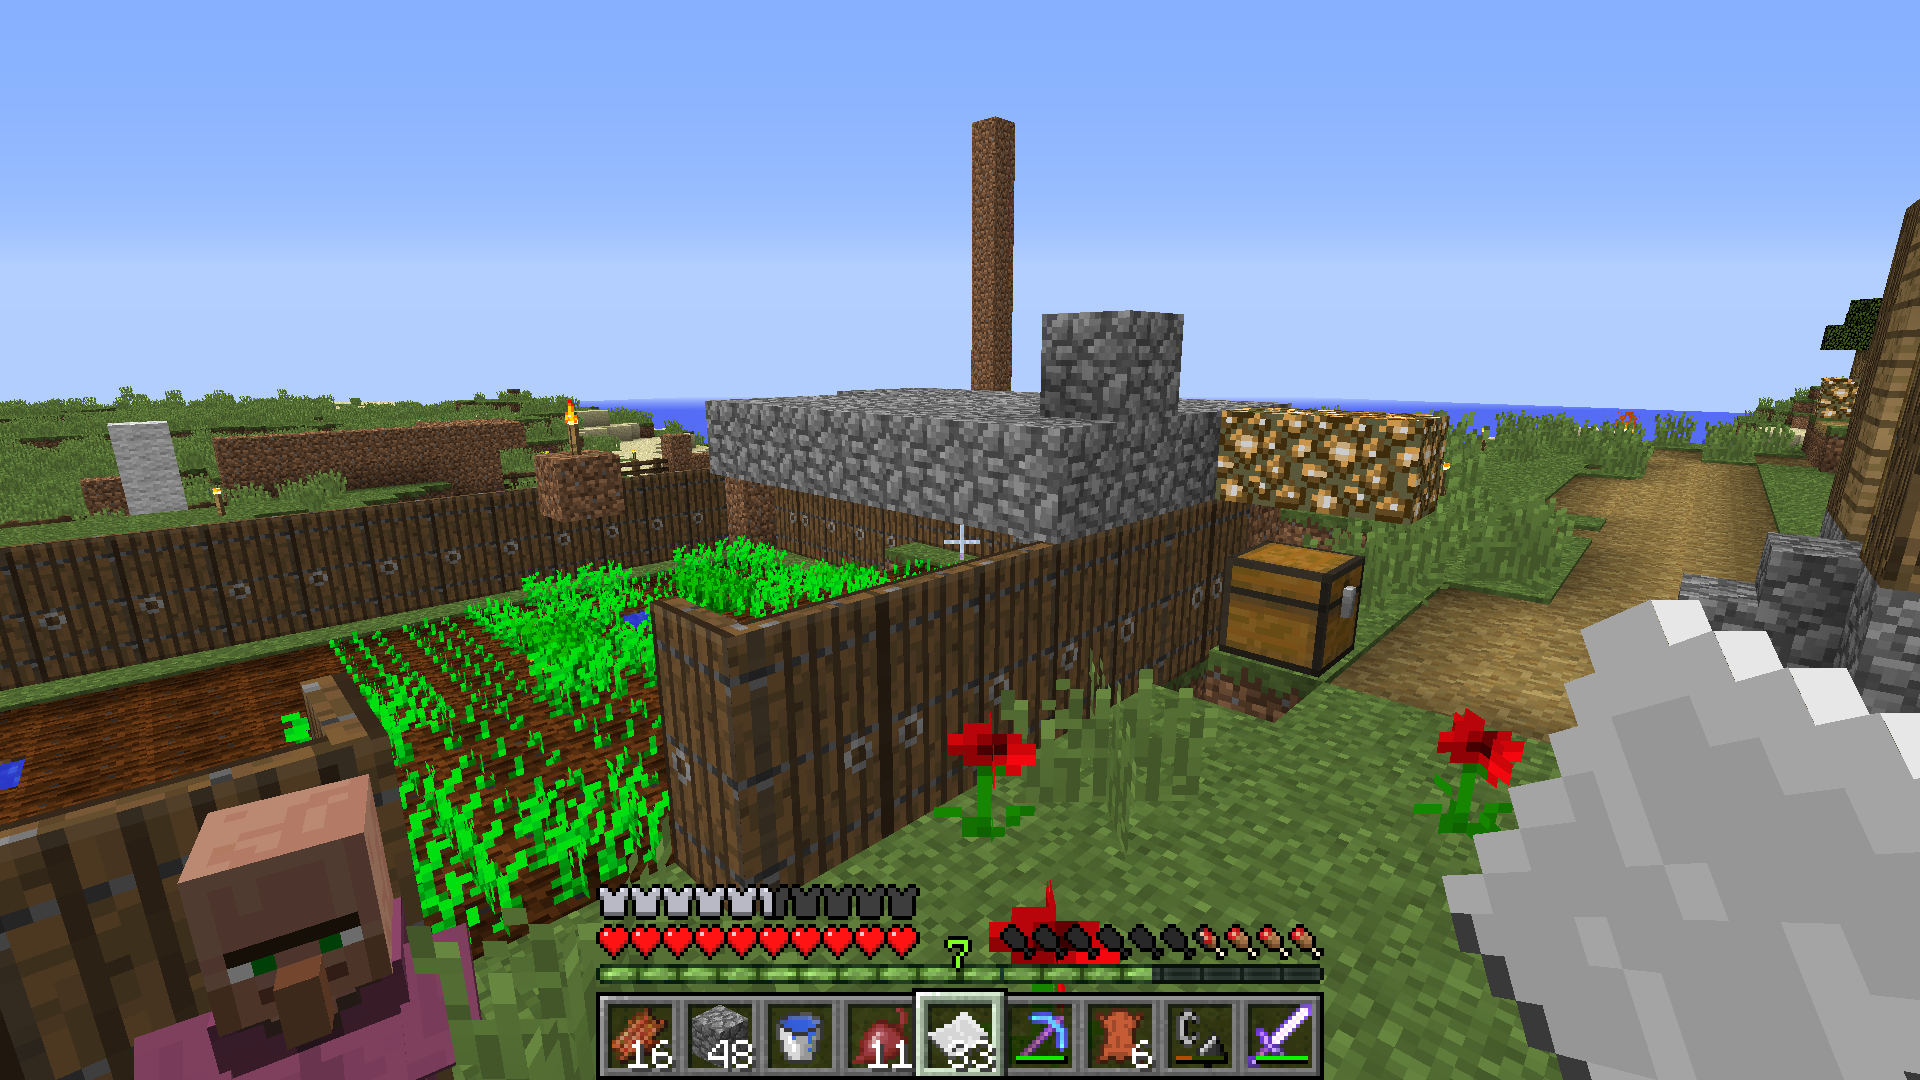 How do villagers breed? - Discussion - Minecraft: Java